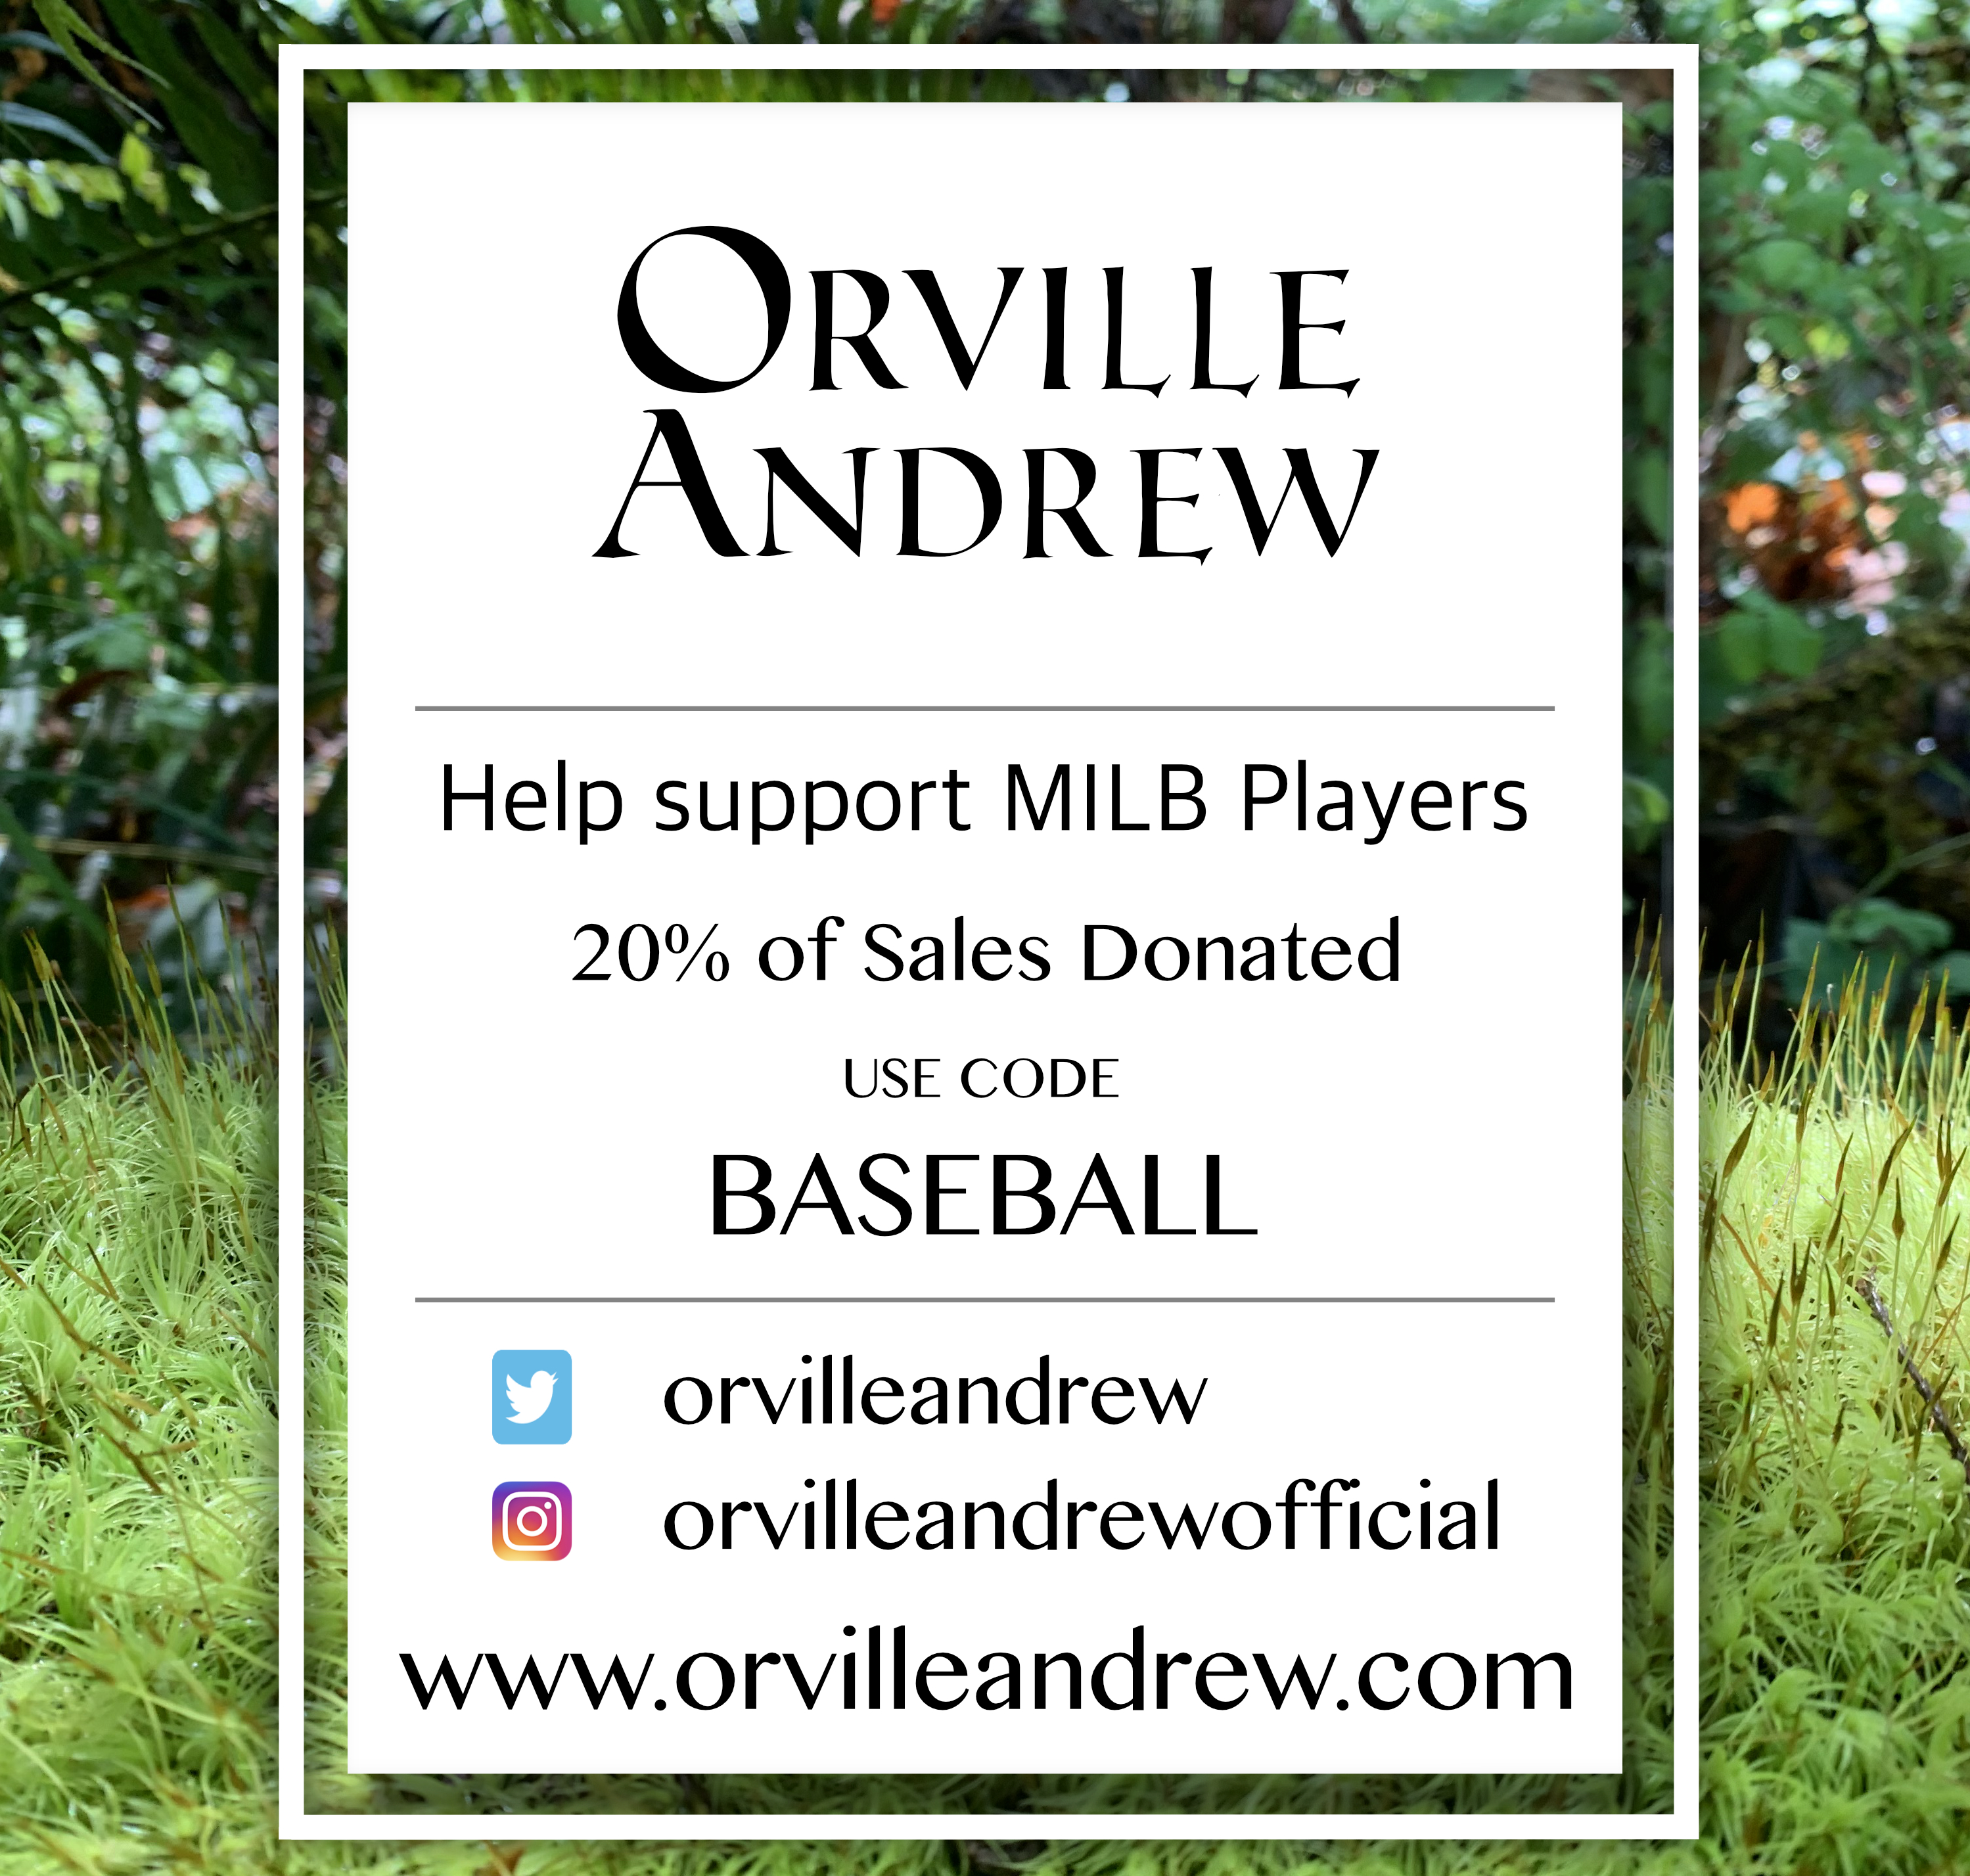 Orville Andrew - Candles by St. Louis Cardinals farmhand Patrick Dayton